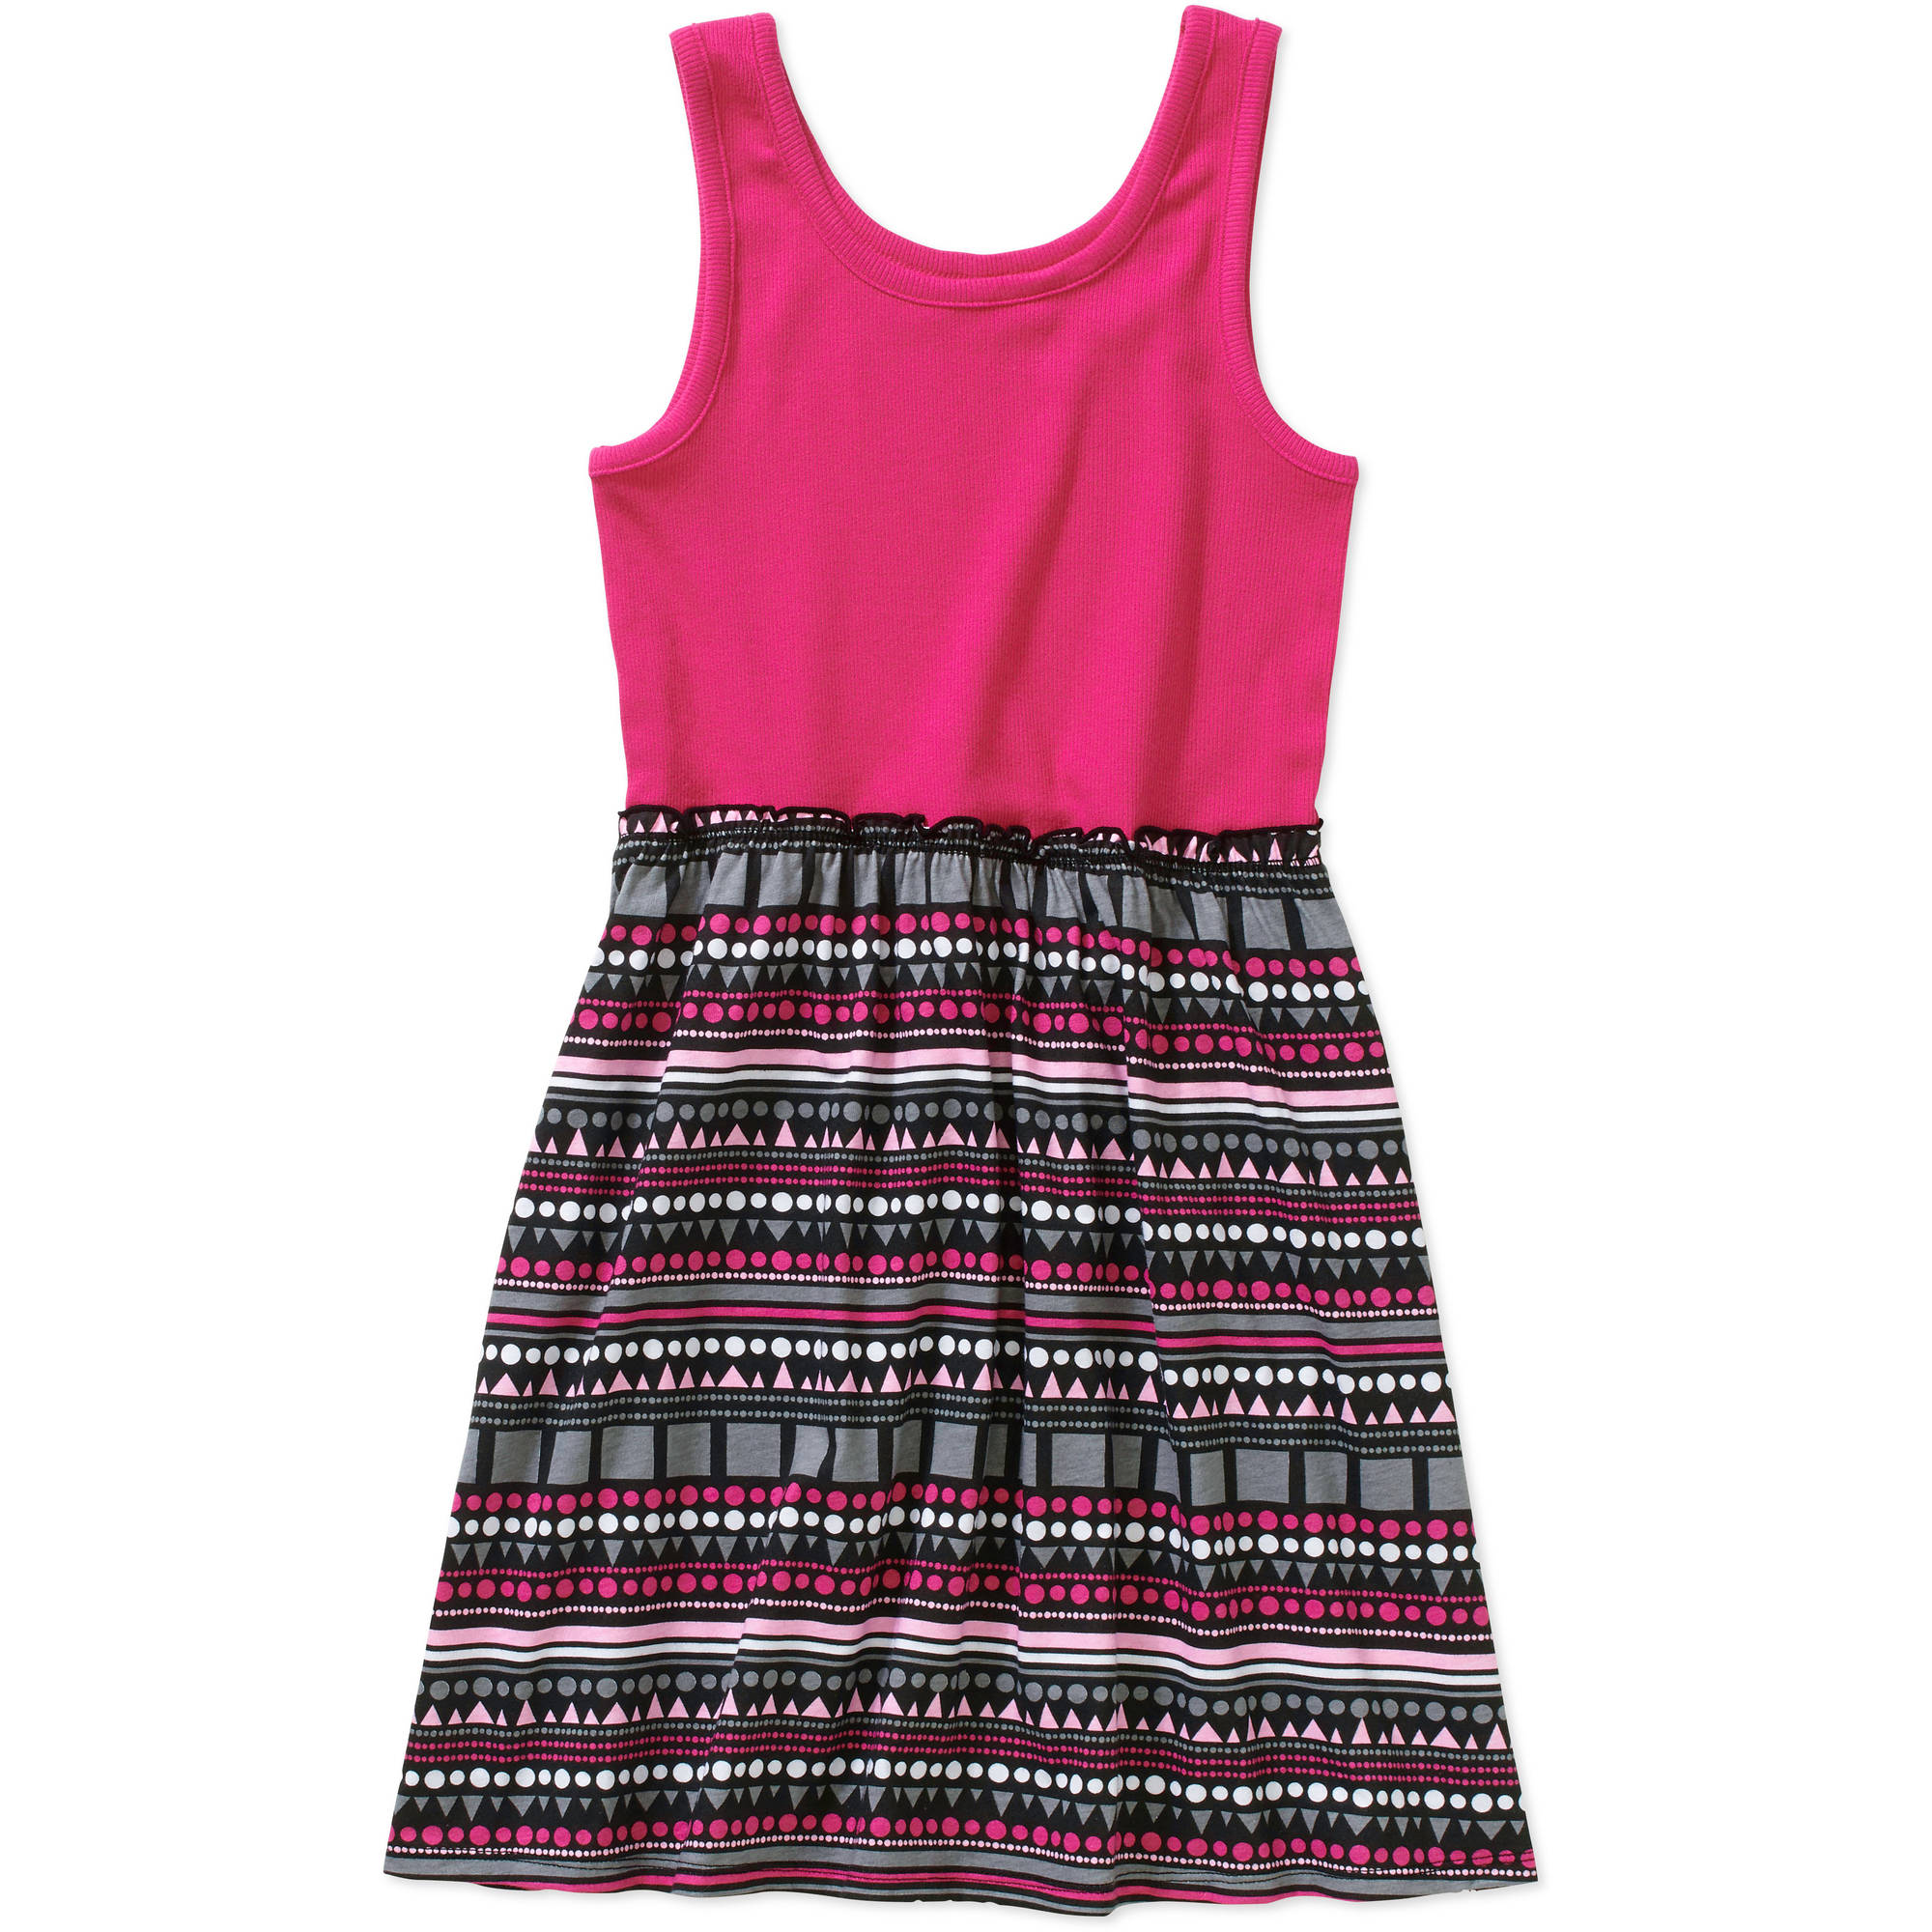 Faded Glory Girls' Tank It Dress